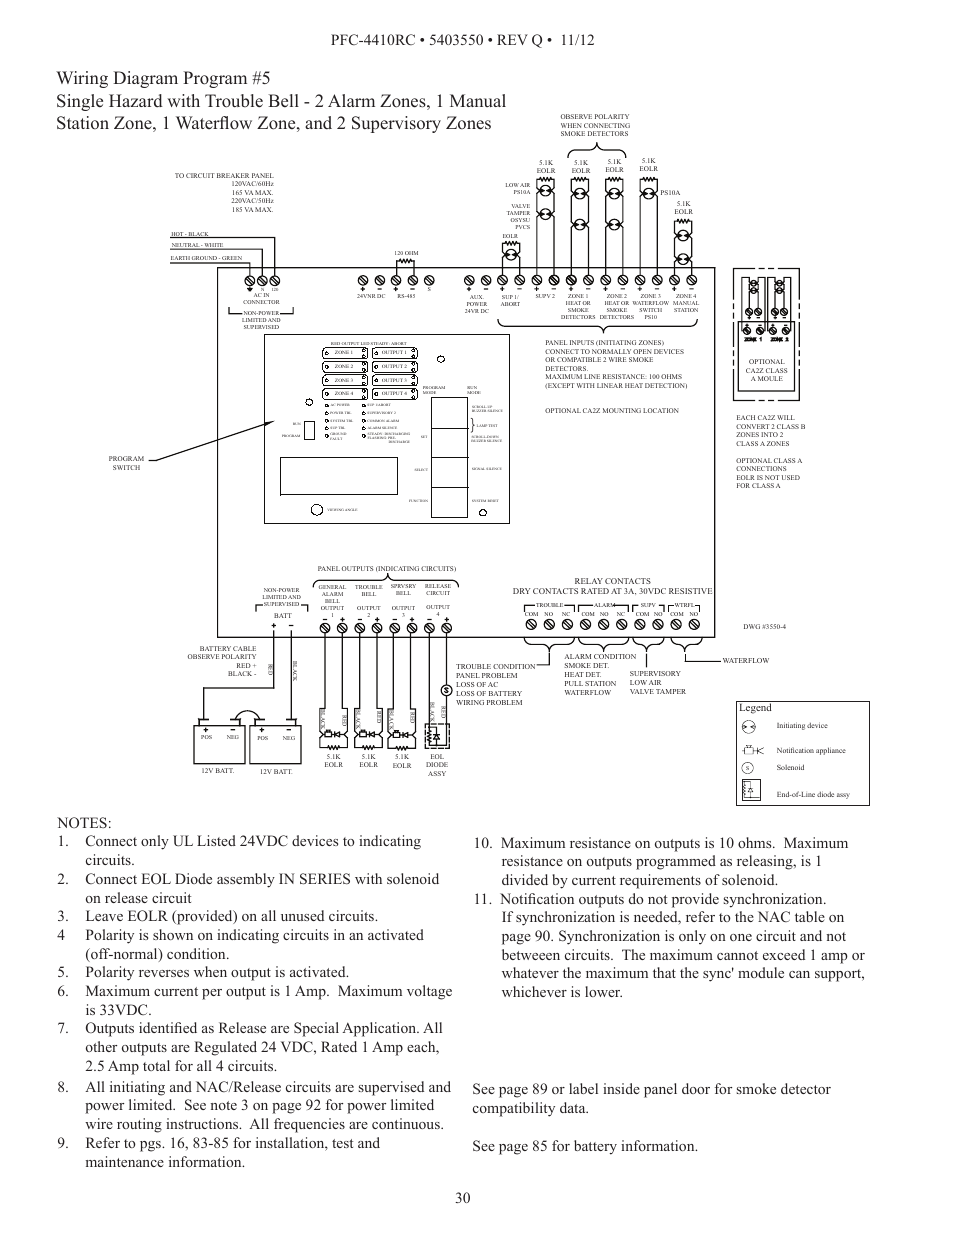 Potter Tamper Switch Wiring Diagram : 35 Wiring Diagram